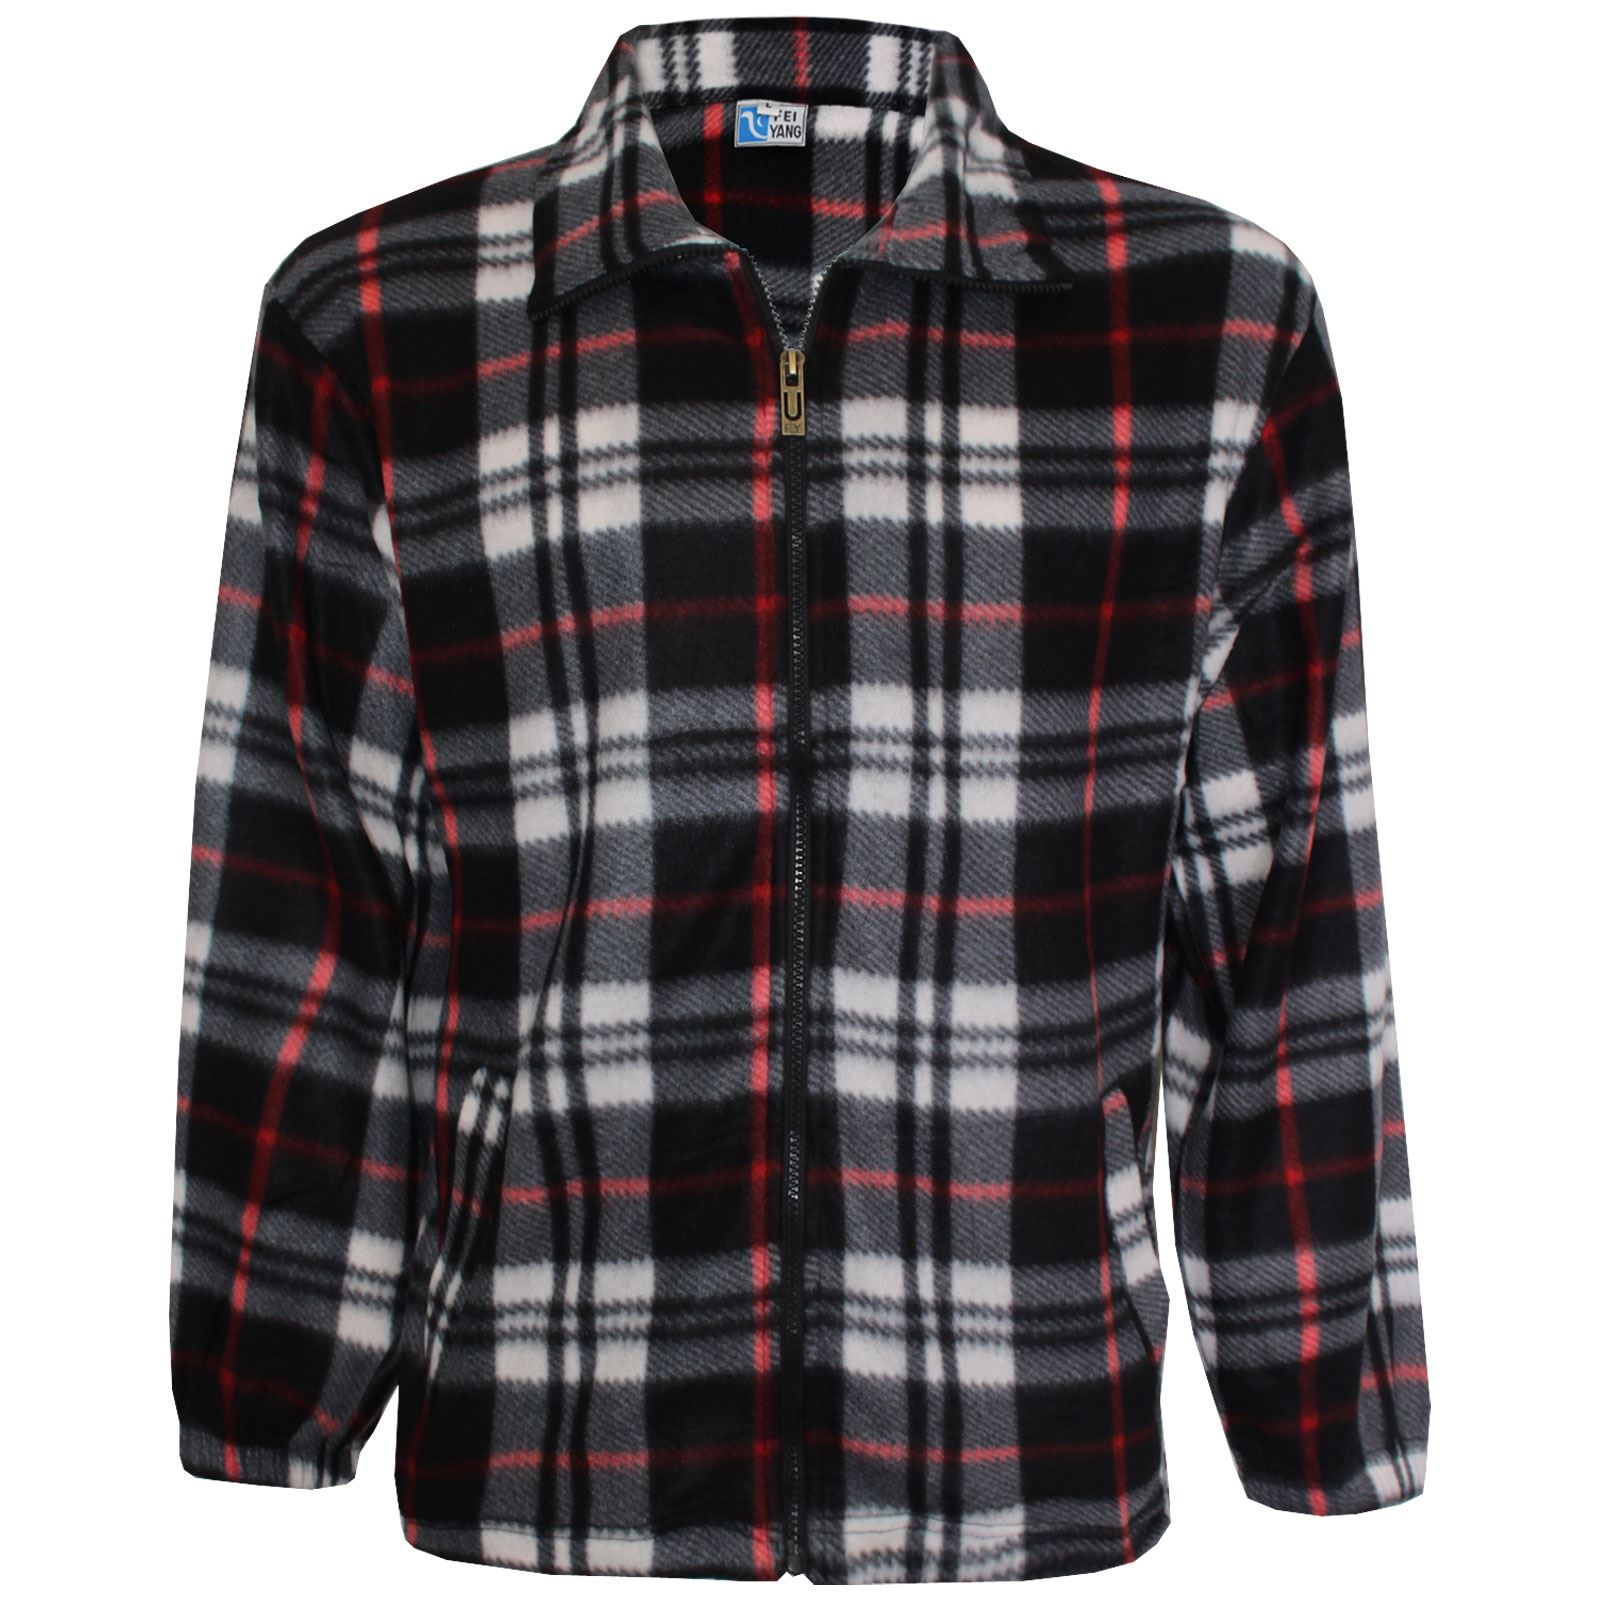 mens new flannel lumber jack warm brushed fleece work. Black Bedroom Furniture Sets. Home Design Ideas